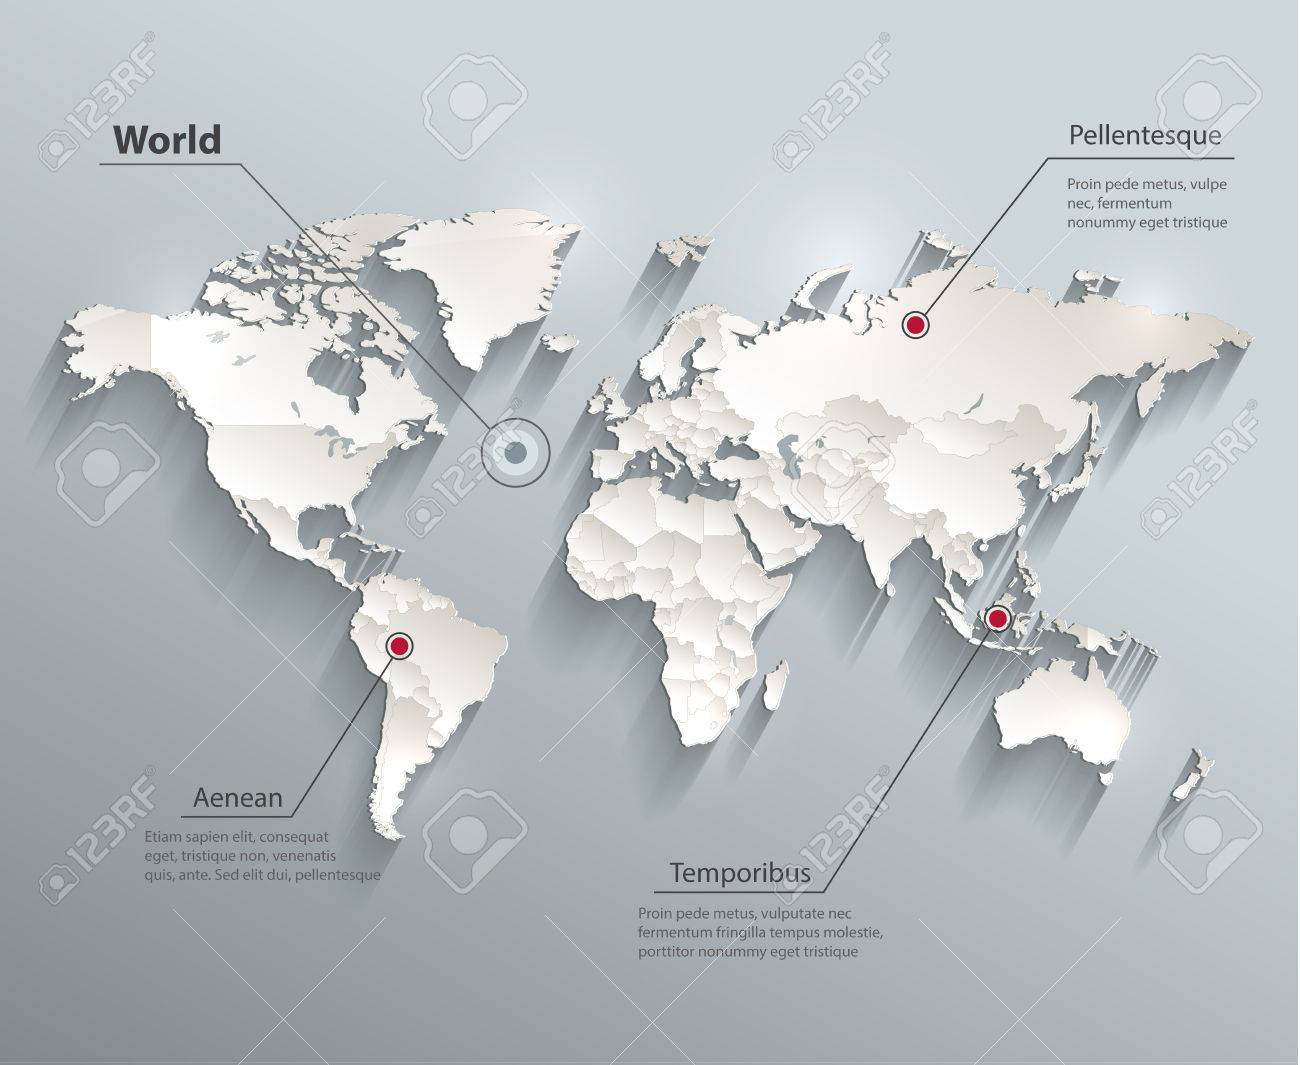 World political map 3d royalty free cliparts vectors and stock vector world political map 3d gumiabroncs Images